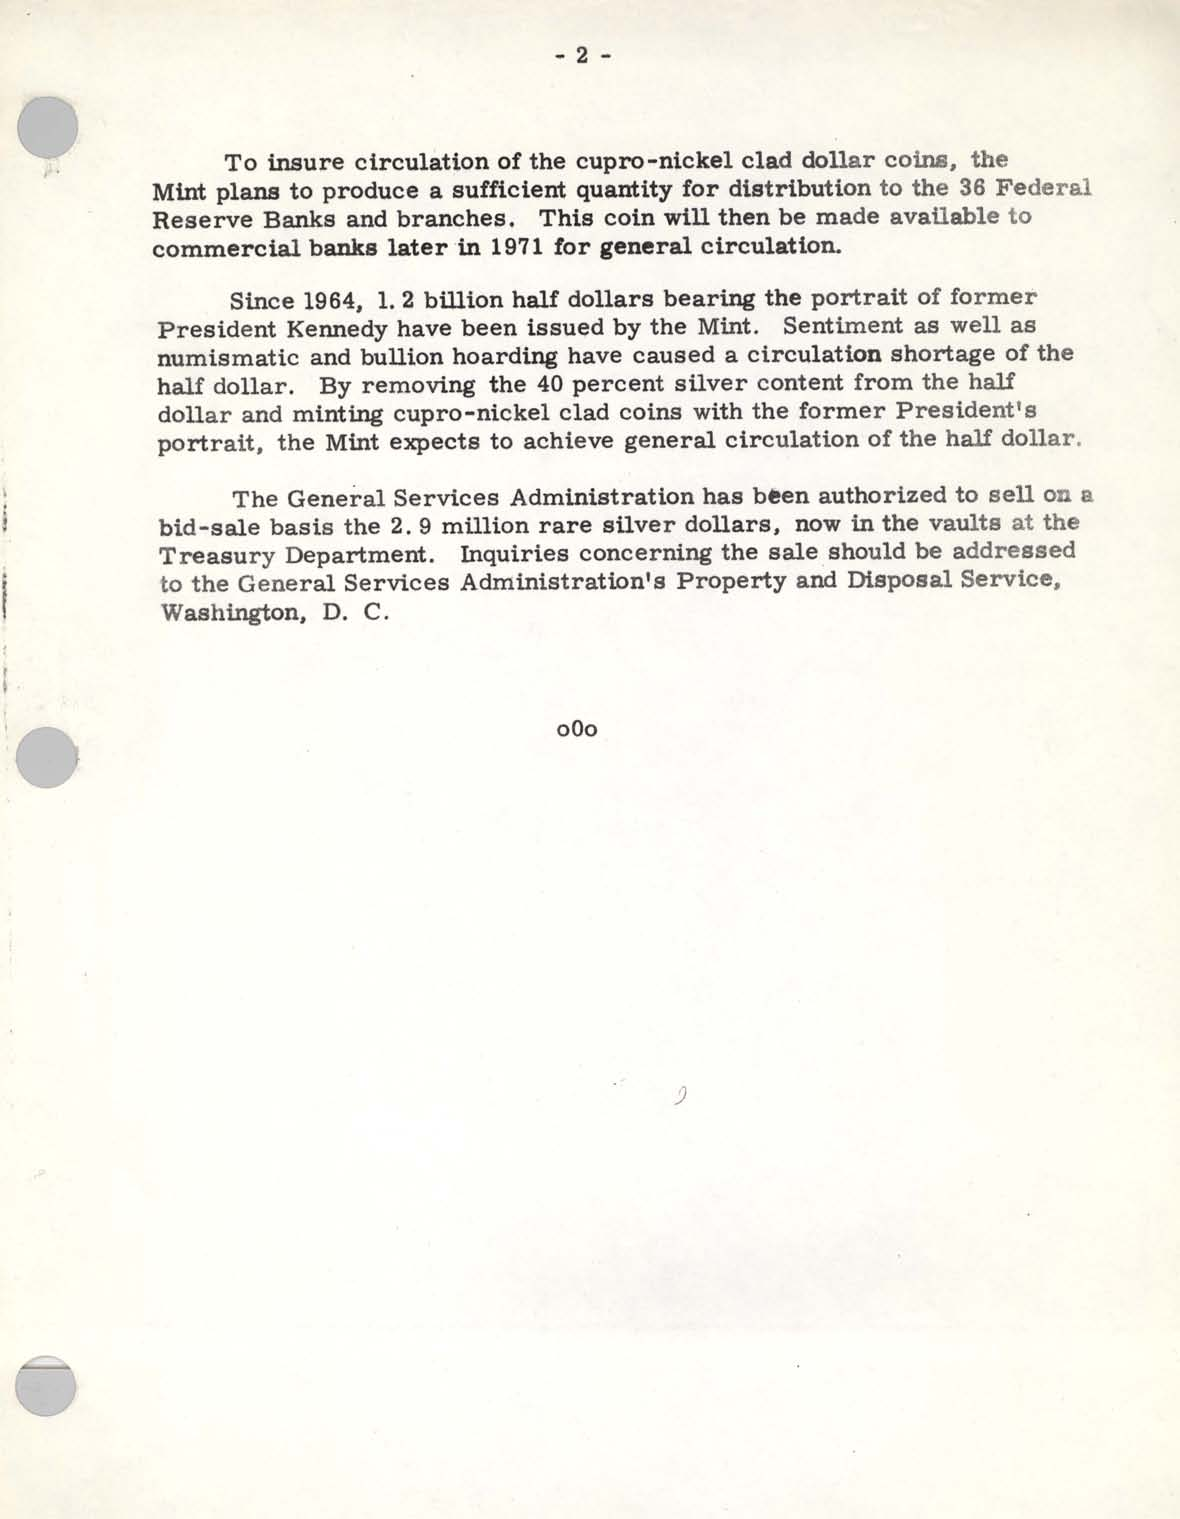 Historic Press Release: 1970 Coinage Law, Page 2